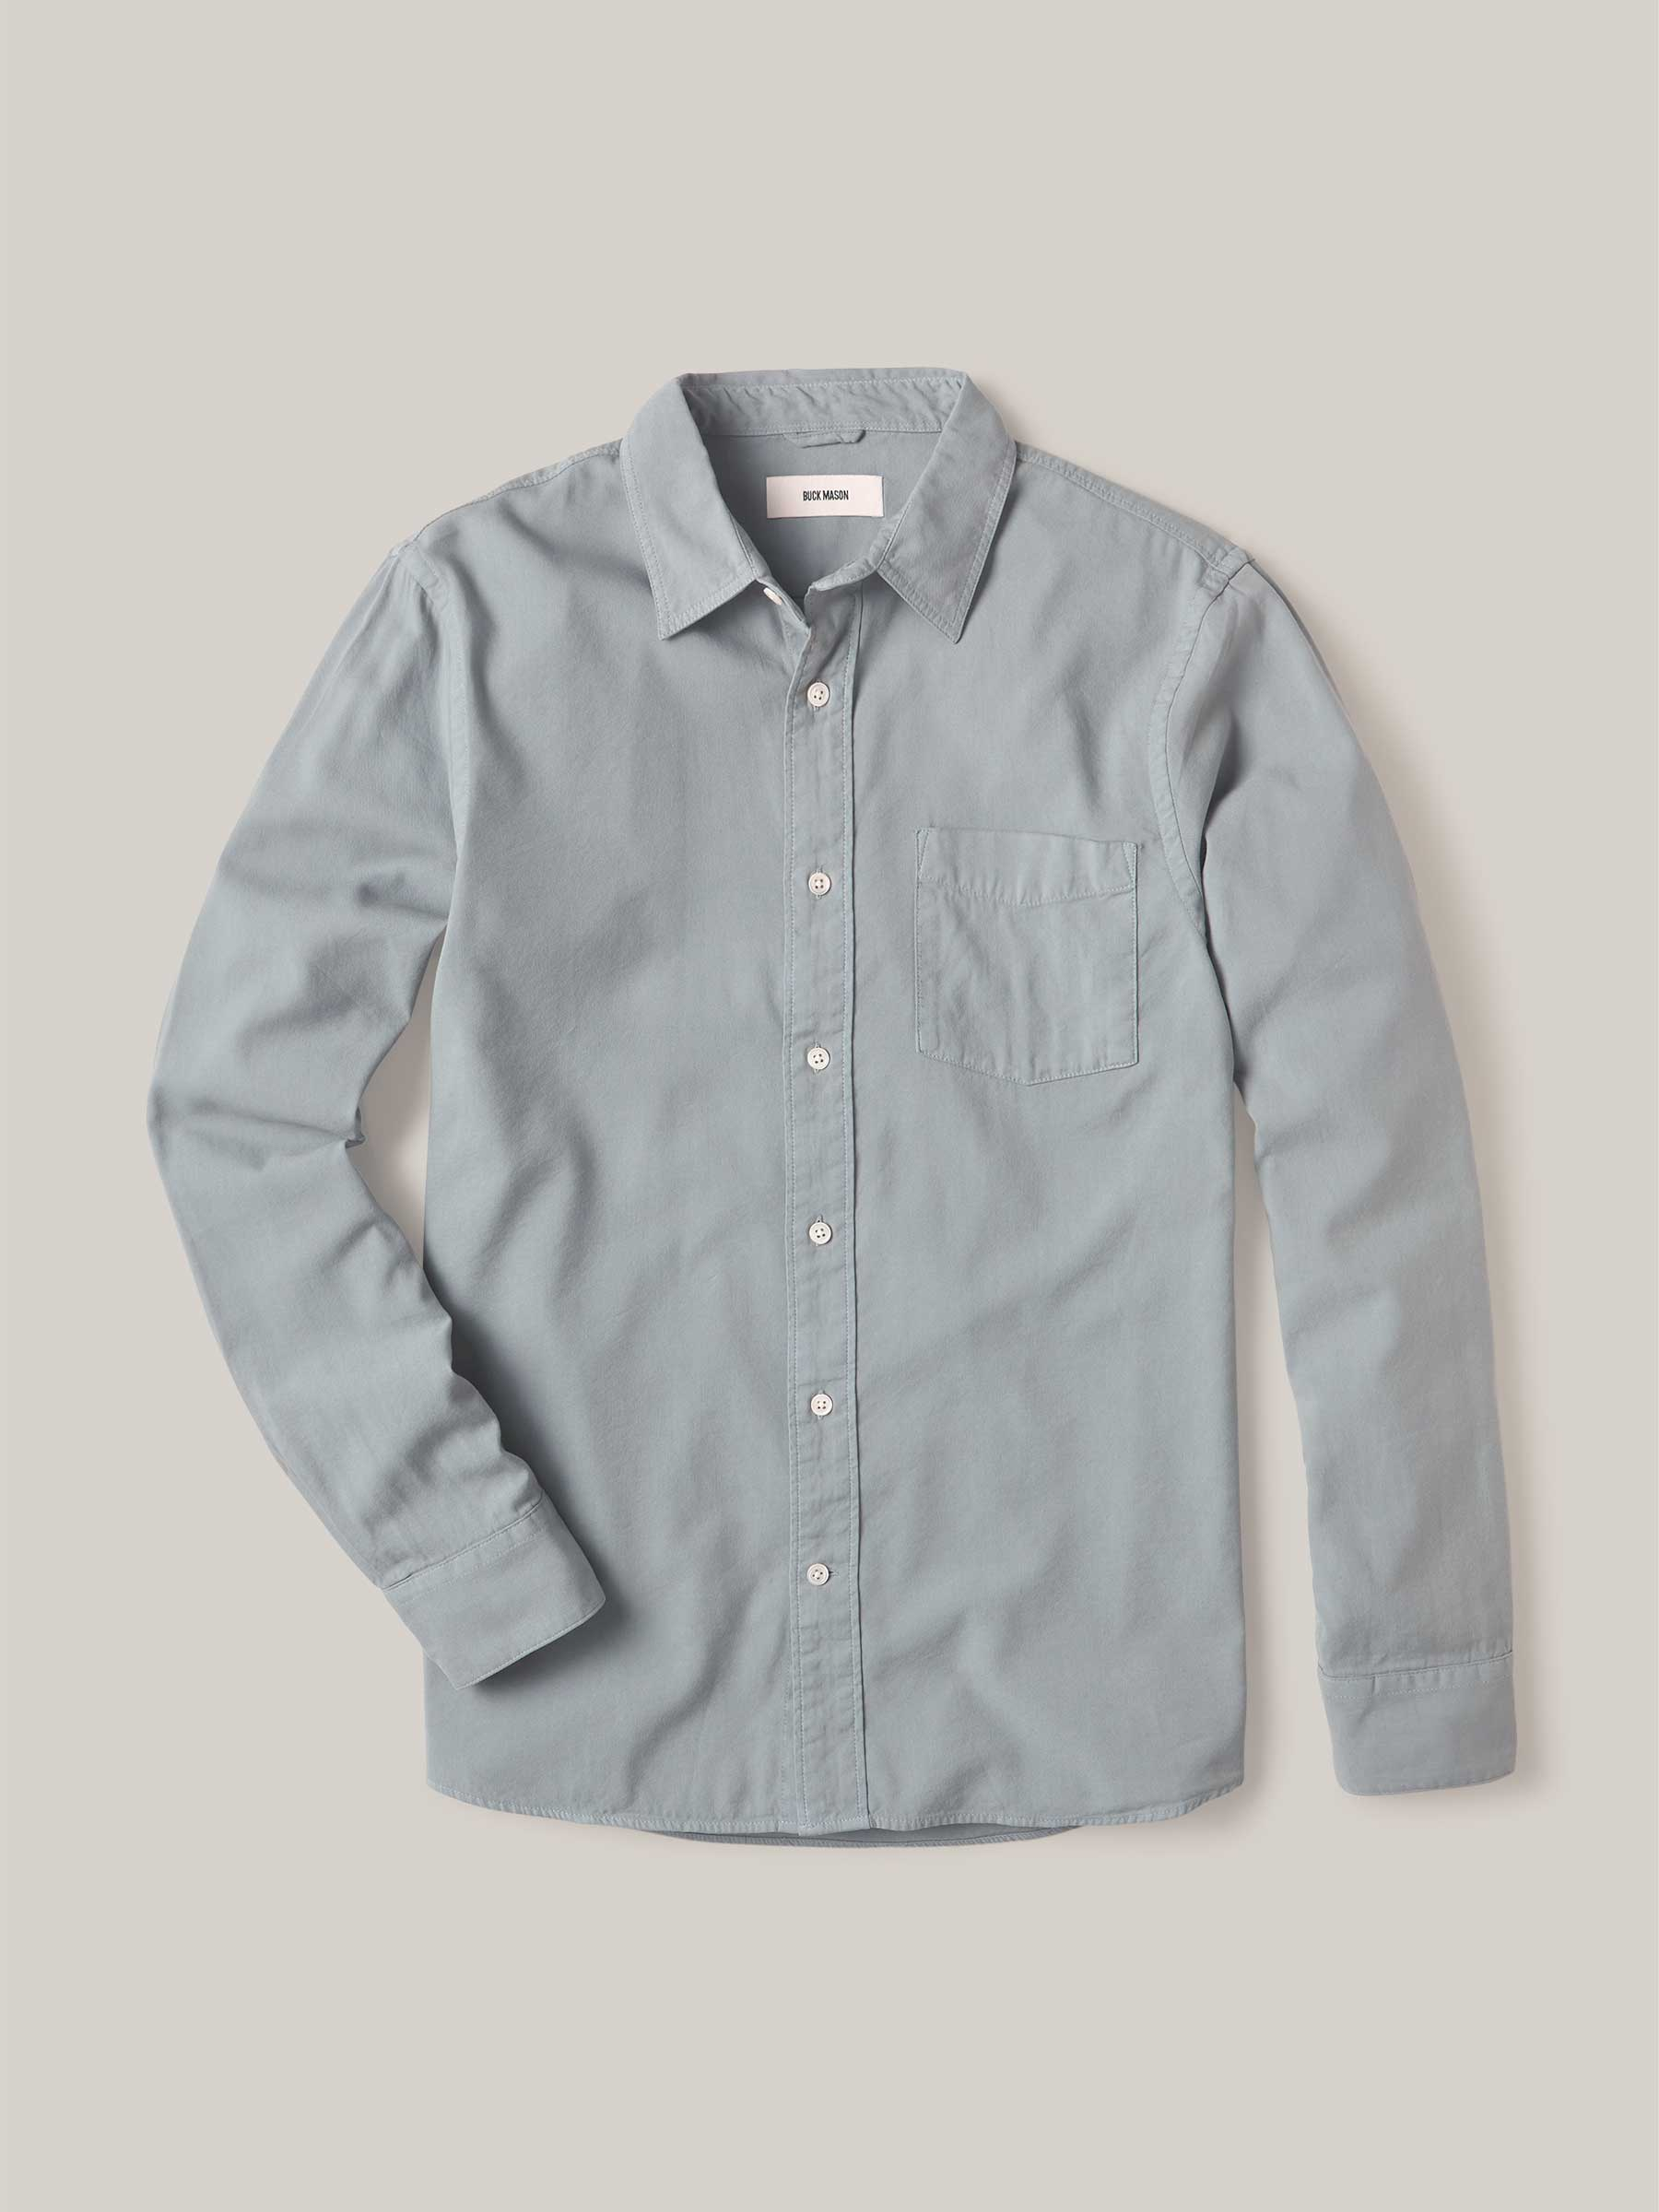 Buck Mason - Pacific Draped Twill One Pocket Shirt